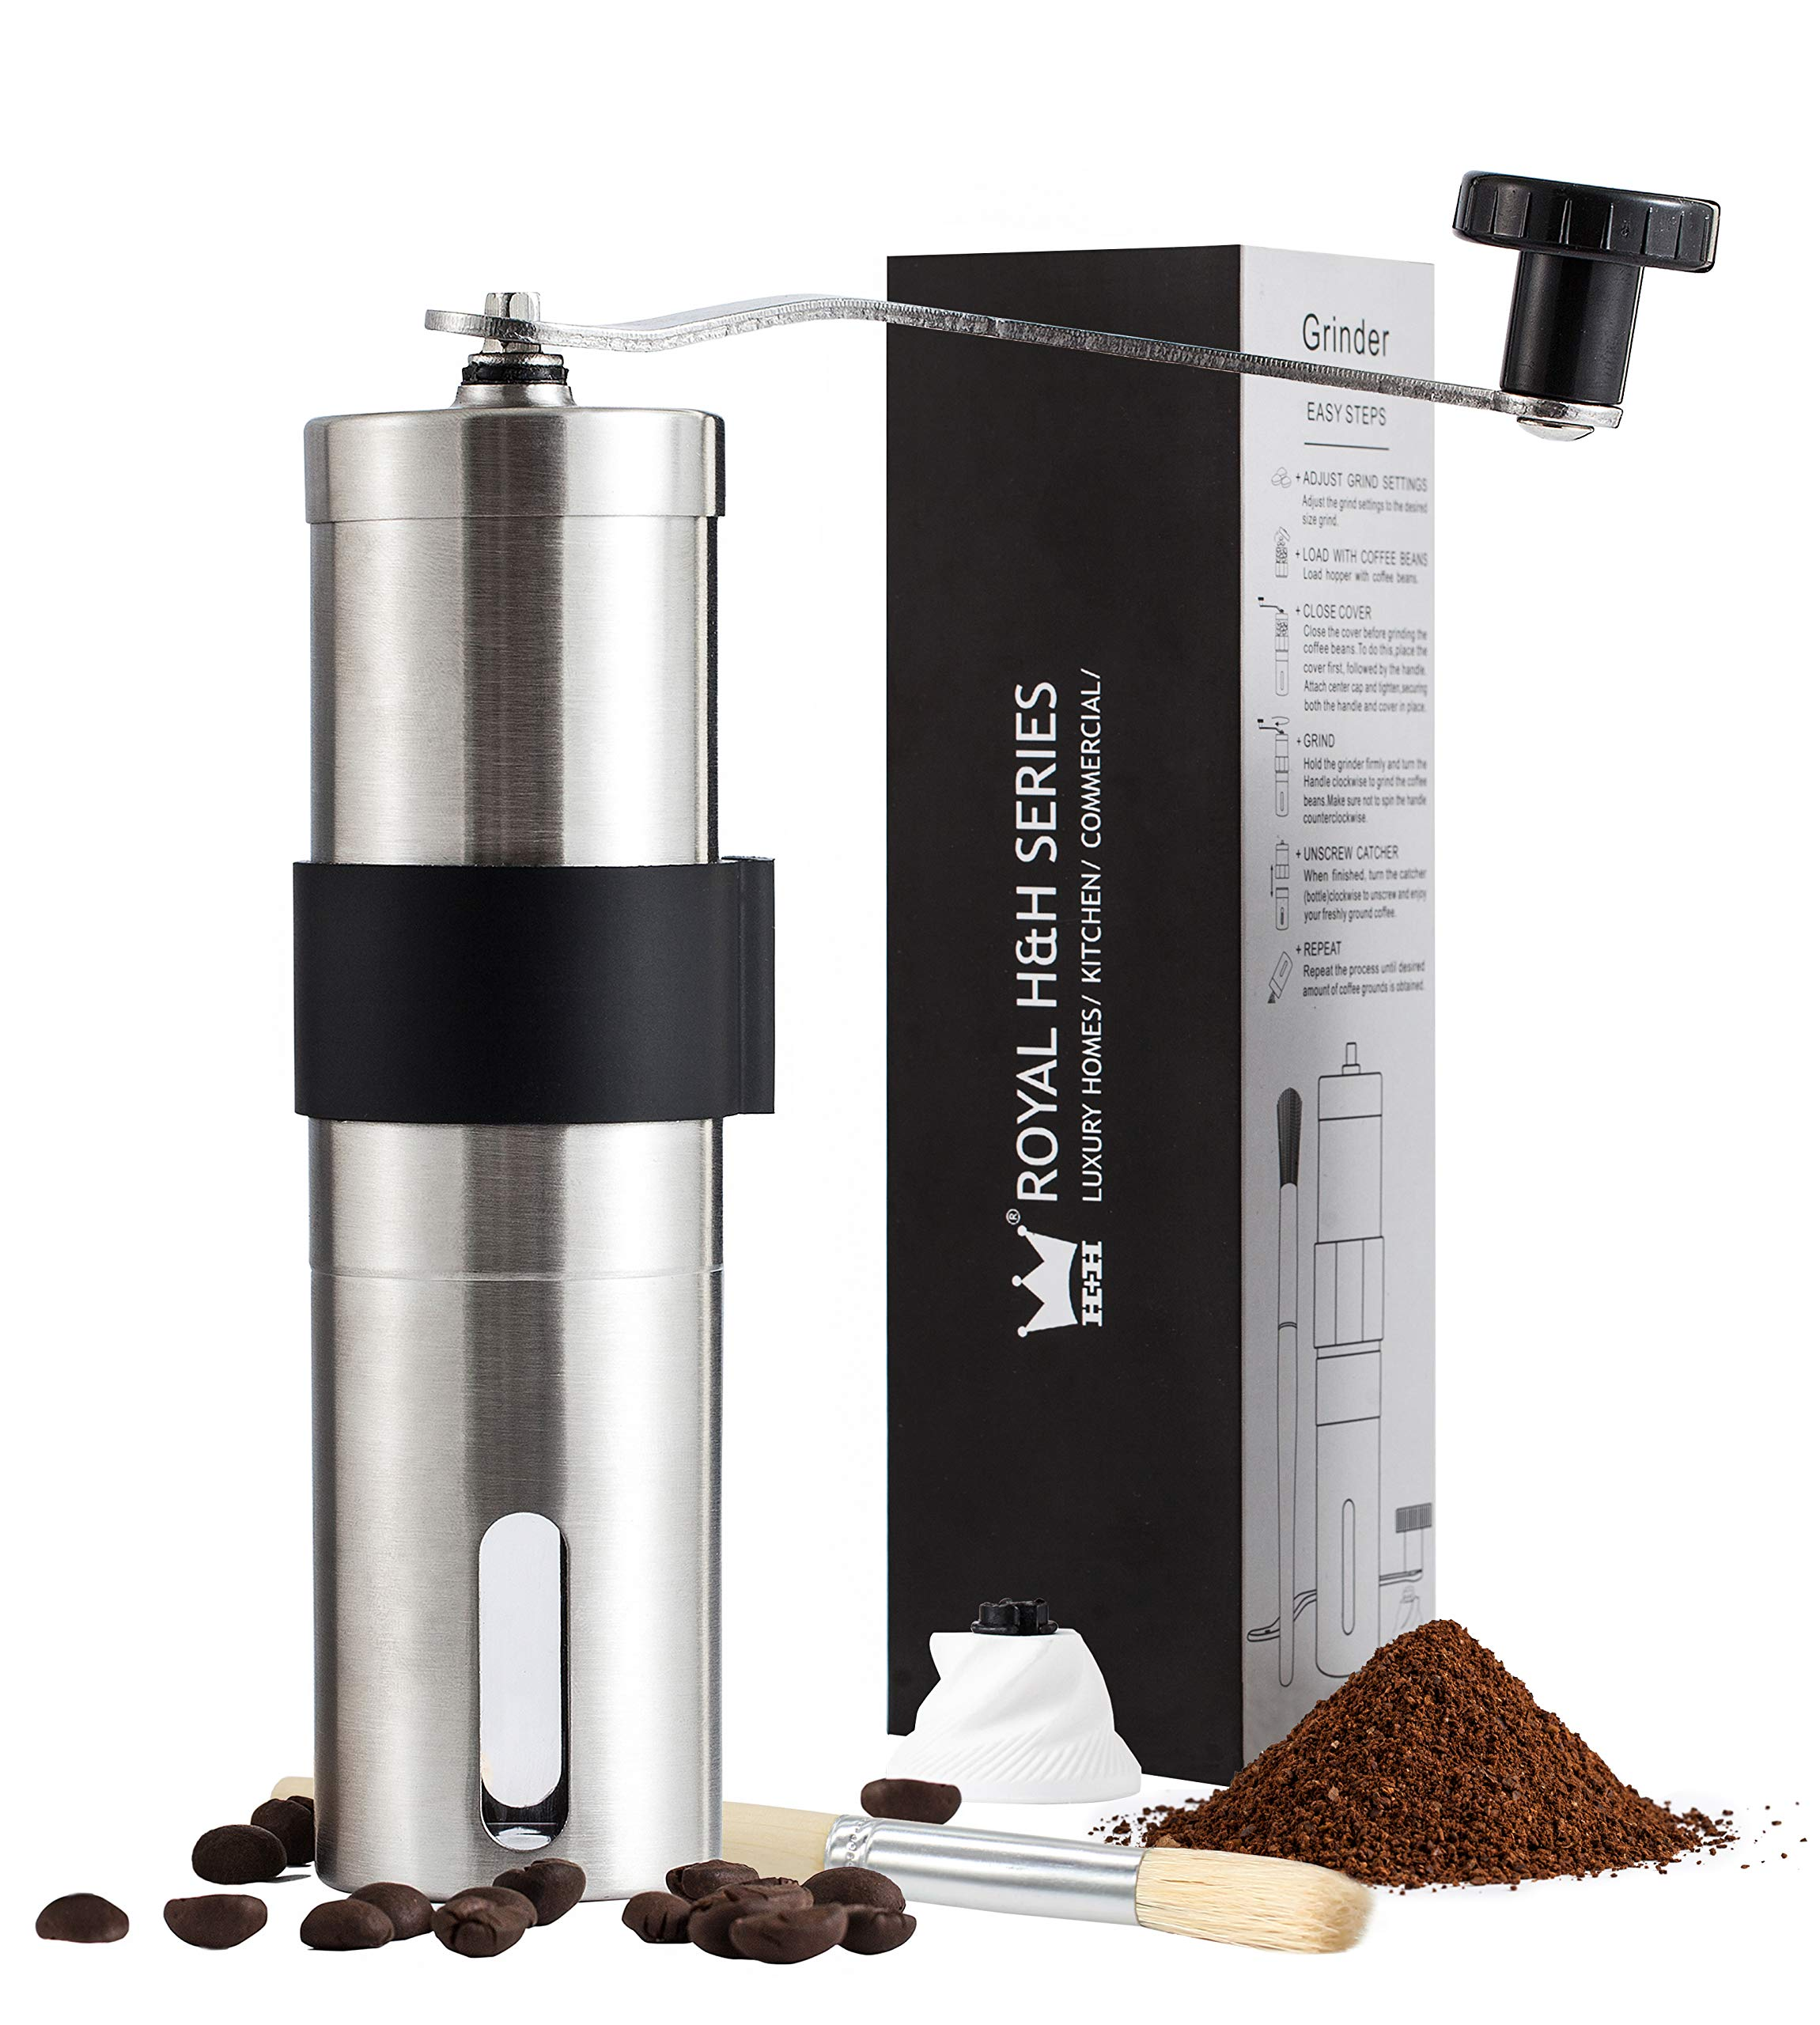 Royal H&H Fine Manual Coffee Grinder Ceramic Burr Mill Portable Hand Held Conical Adjustable Size Fresh Whole Kopi Bean Grind Maker Heavy Duty Brushed Stainless Steel Extra Burr and Brush Set by Royal Home & Hardware